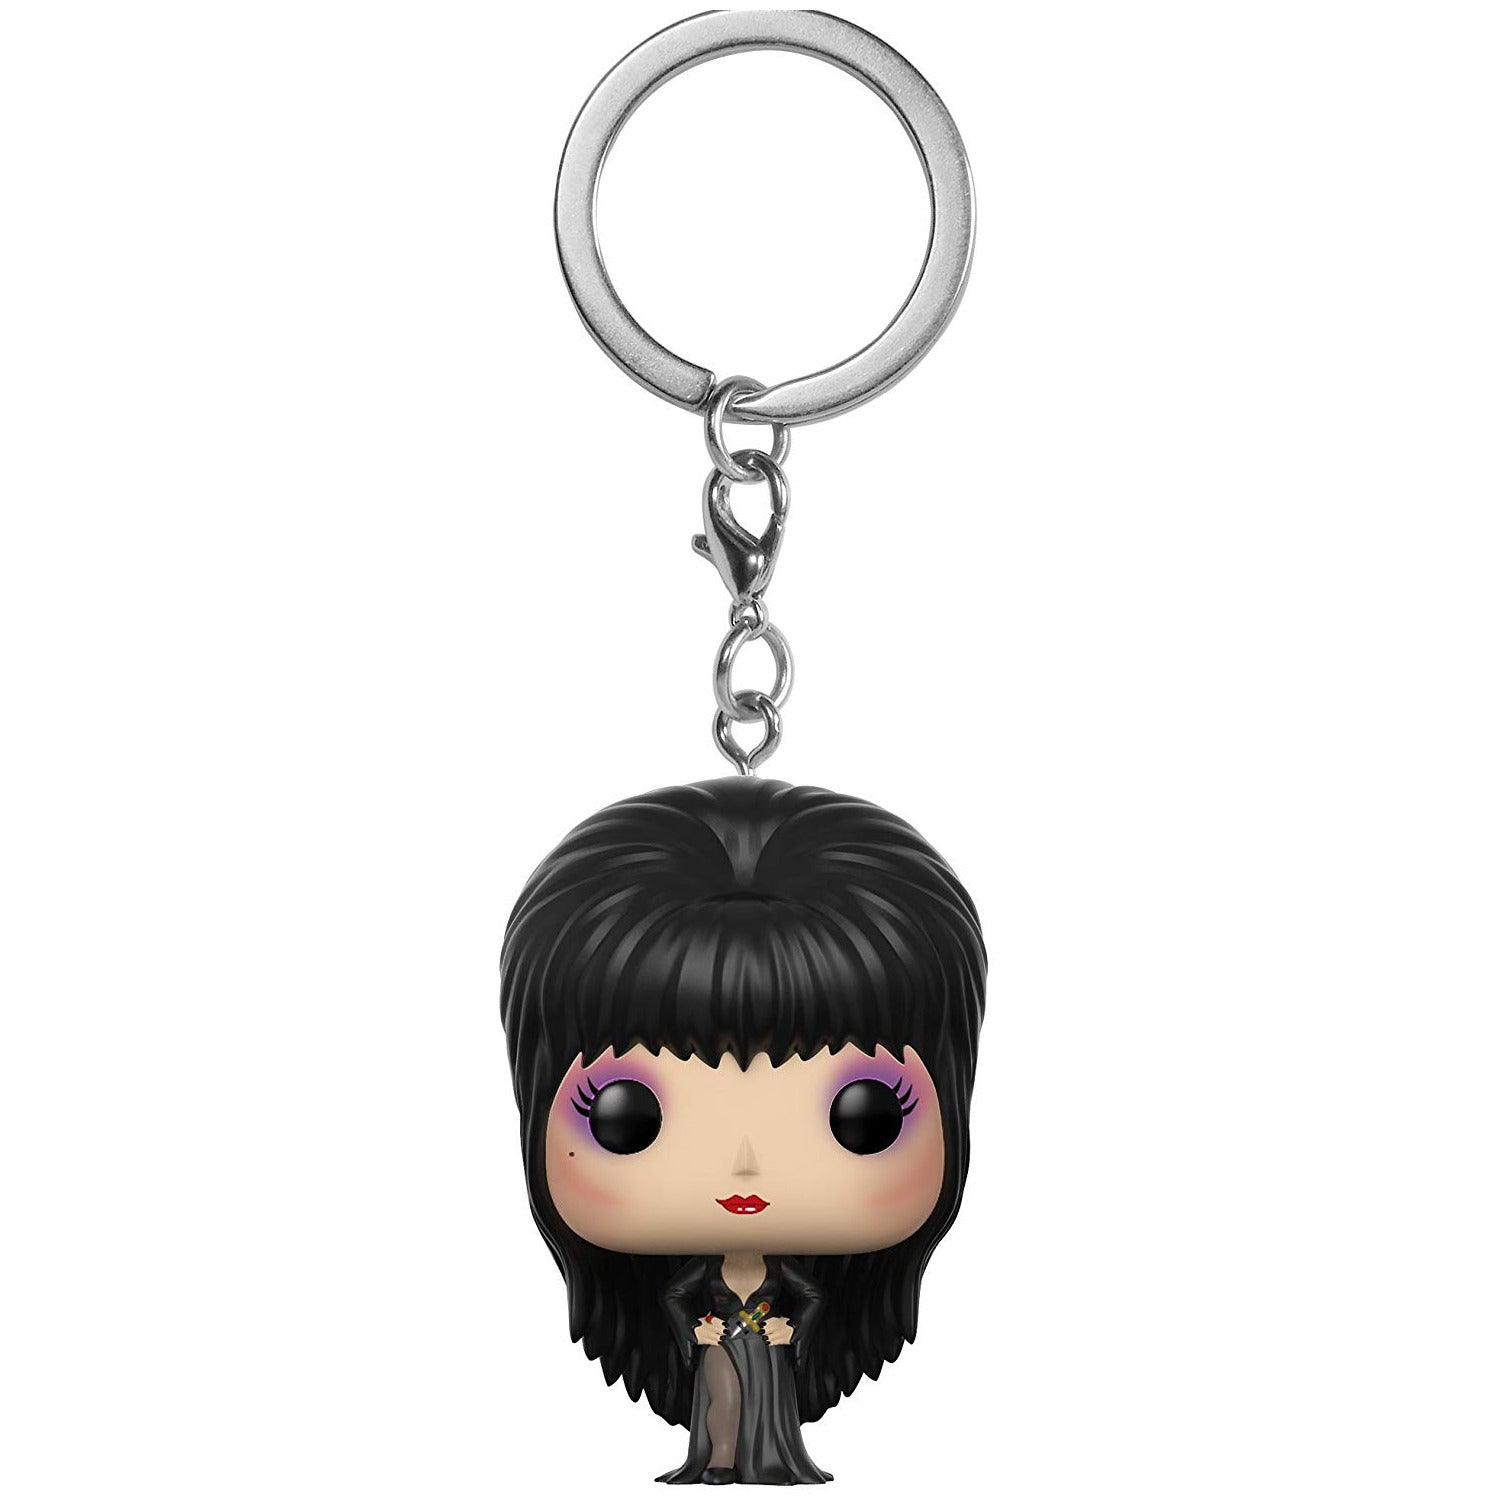 Elvira Mistress Of The Dark Pocket Pop! Keychain Vinyl Figure